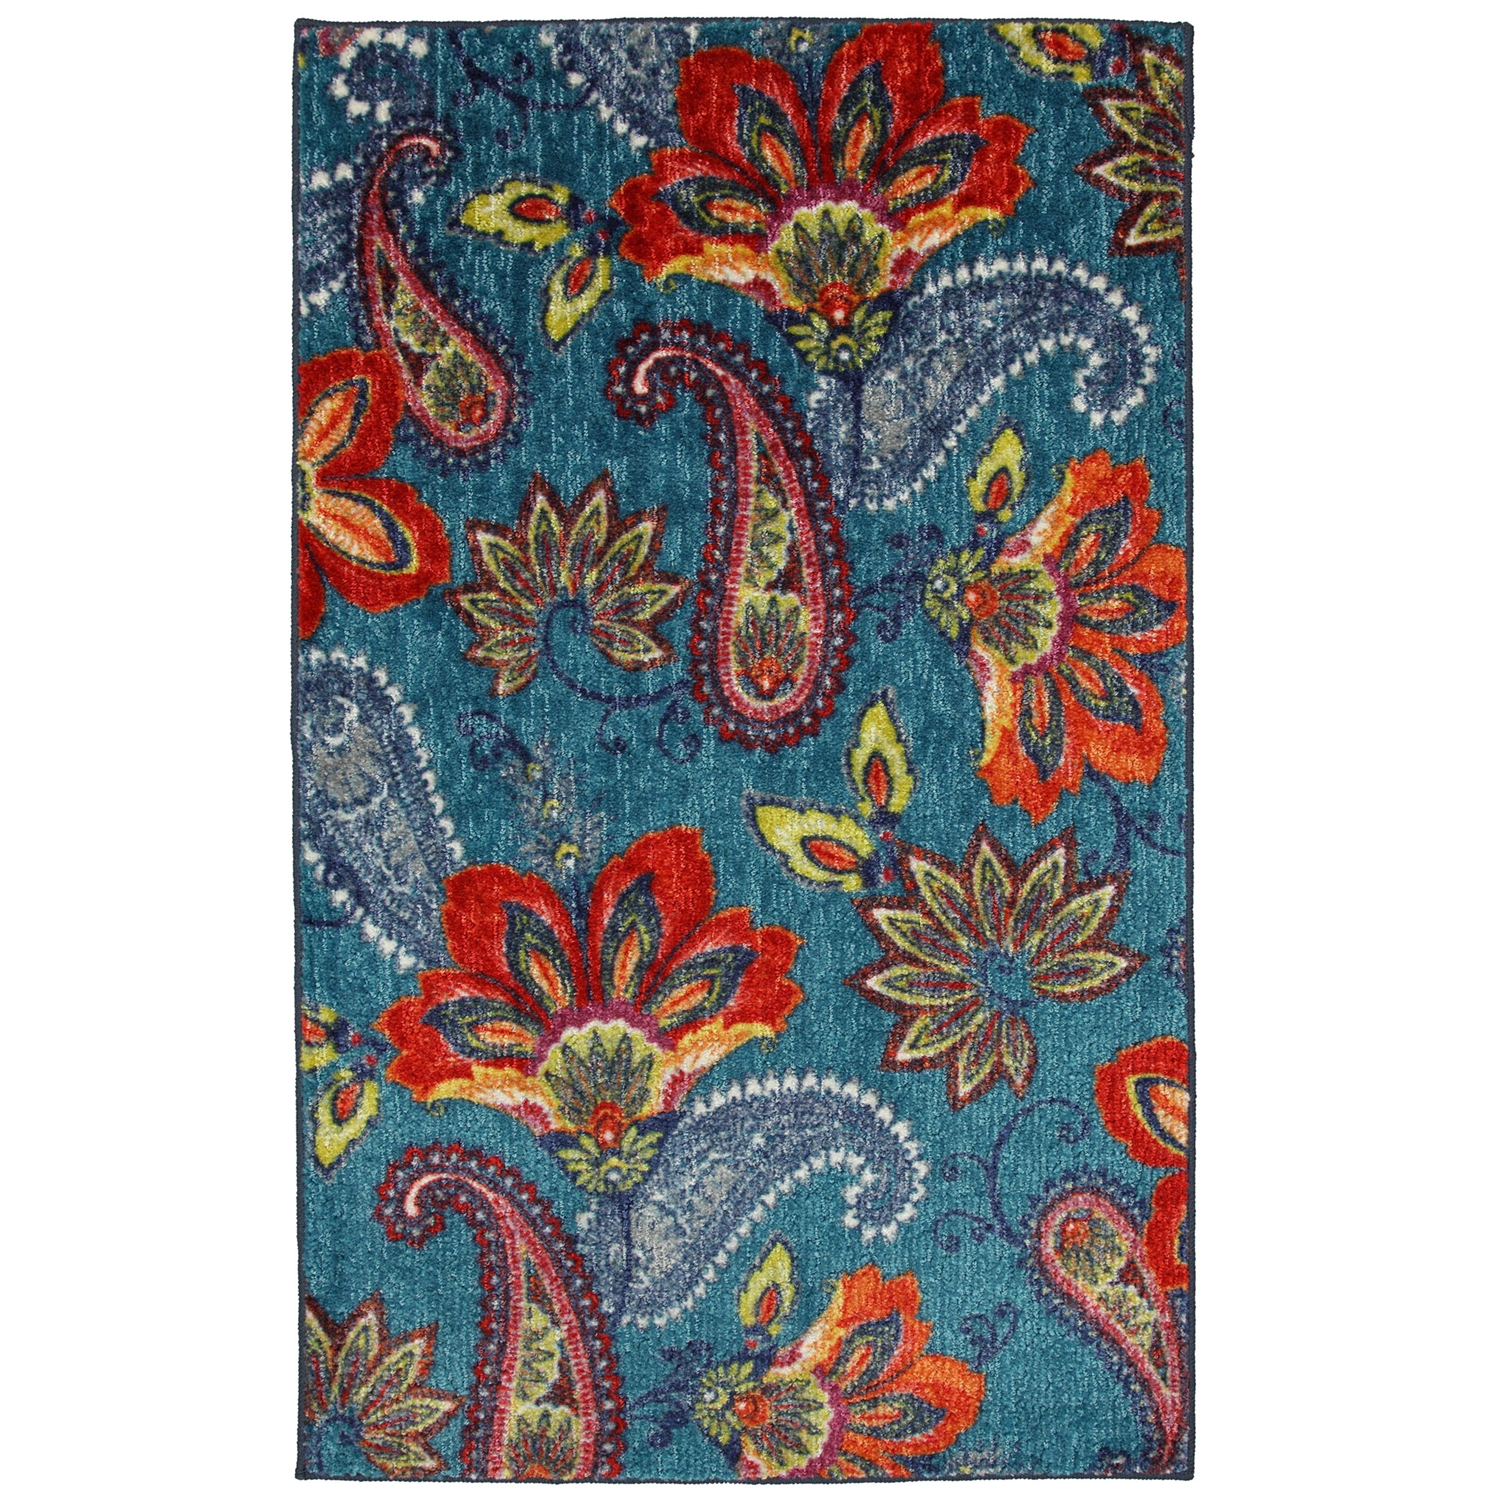 8' x 10' Floral Paisley Area Rug in Teal Blue Orange Red, NHPR8X10178 :  Cutting edge and beautifully designed, this 8' x 10' Floral Paisley Area Rug in Teal Blue Orange Red - Made in USA is an explosion of color and style. Meant for a bold impact, this design creates a vivid center point for your design. Printed on the same machines that manufacture one of the world's leading brands of printed carpet, this rug is extremely durable and vibrant. This technology allows the use of multiple colors to create a rug that is wonderfully designed and applicable to any room in your home. Paisley pattern; Action backing; Area rugs should be spot cleaned with a solution of mild detergent and water or cleaned professionally; Regular vacuuming helps rugs remain attractive and serviceable; Primary Pattern: Floral And Plants; Primary Color: Multi Colored; Material: Synthetic.